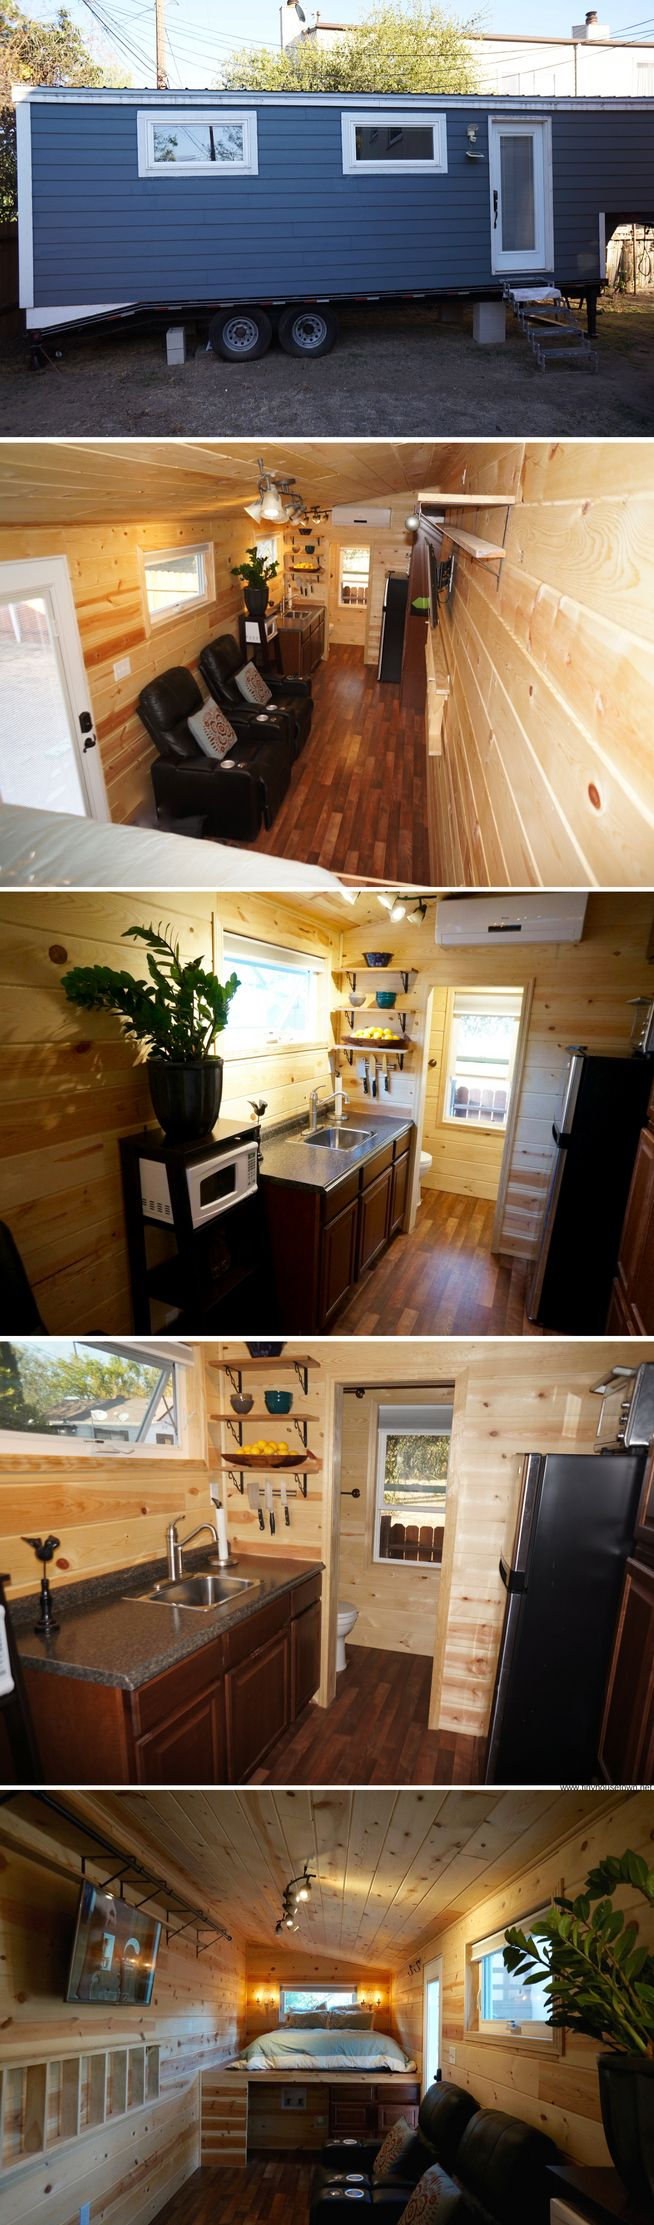 a 240 sq ft tiny house currently available for sale in pasadena ca